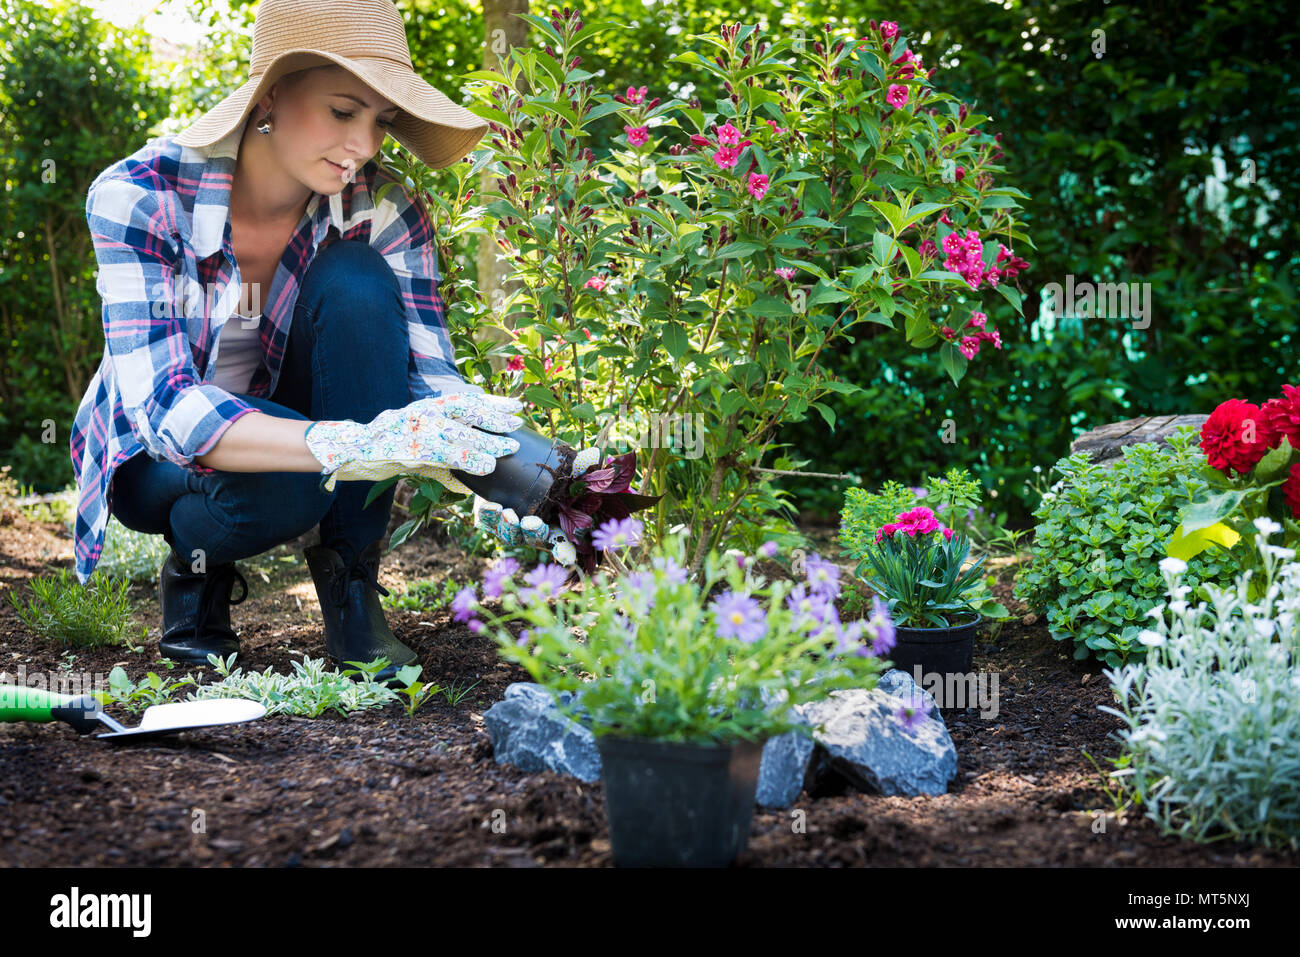 4abb26c0 Beautiful female gardener wearing straw hat planting flowers in her garden.  Gardening concept. Garden landscaping small business owner.